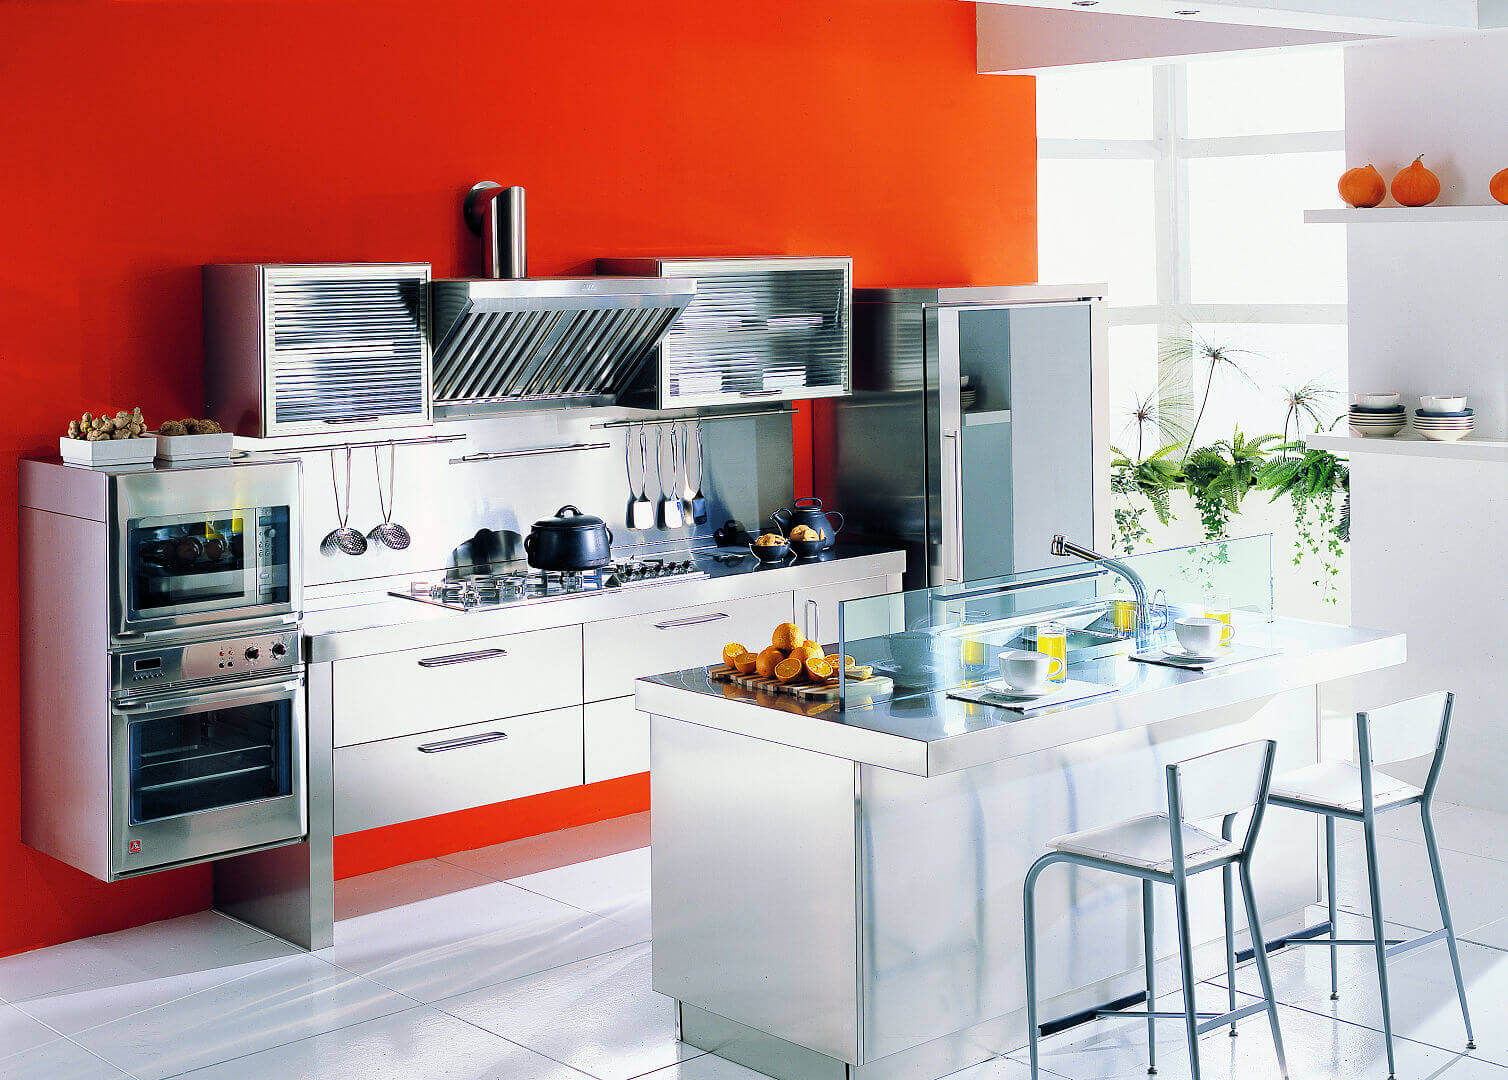 Arca Cucine Italy - Home Kitchen Stainless Steel - Spring